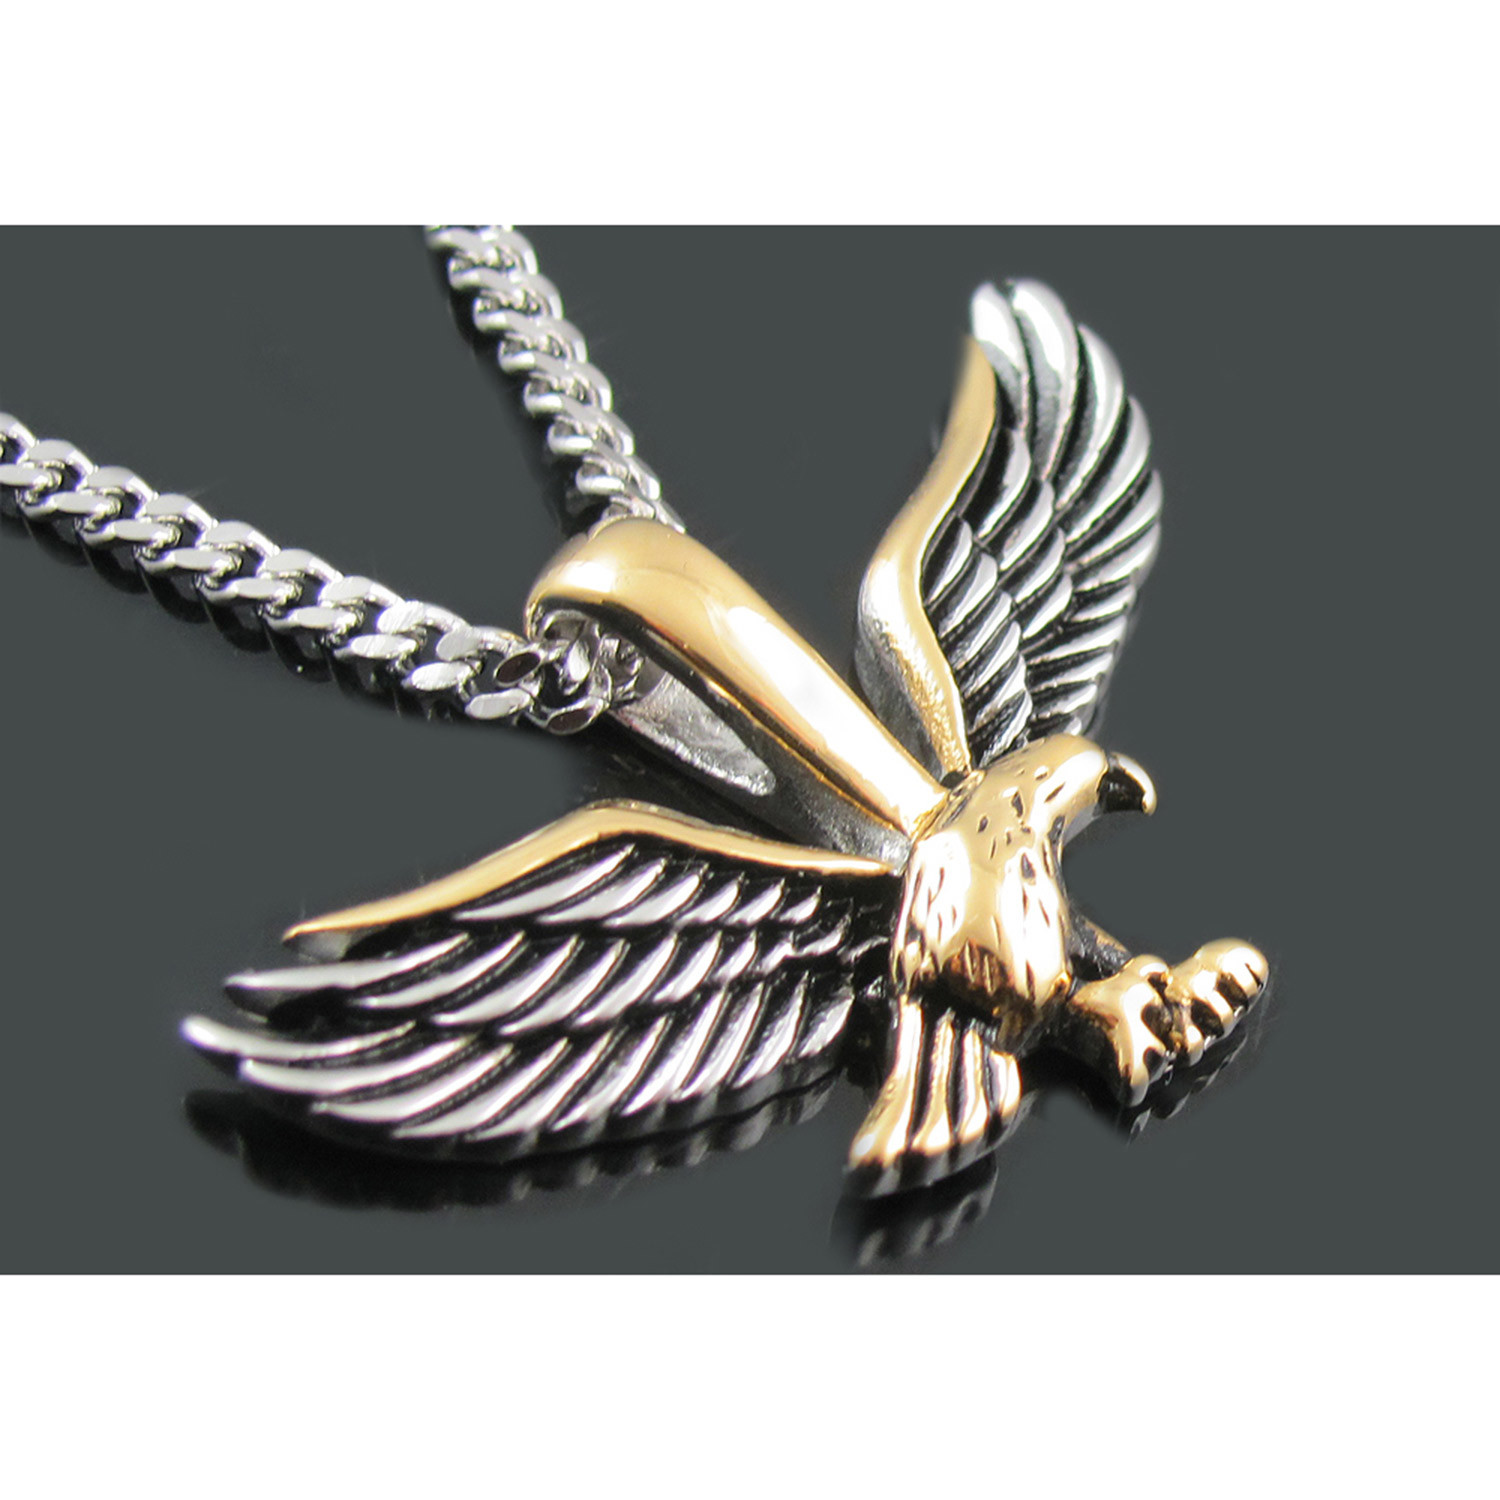 accent i pendant overstock diamond mens yellow product isabella s jewelry eagle watches men shipping h free gold today collection